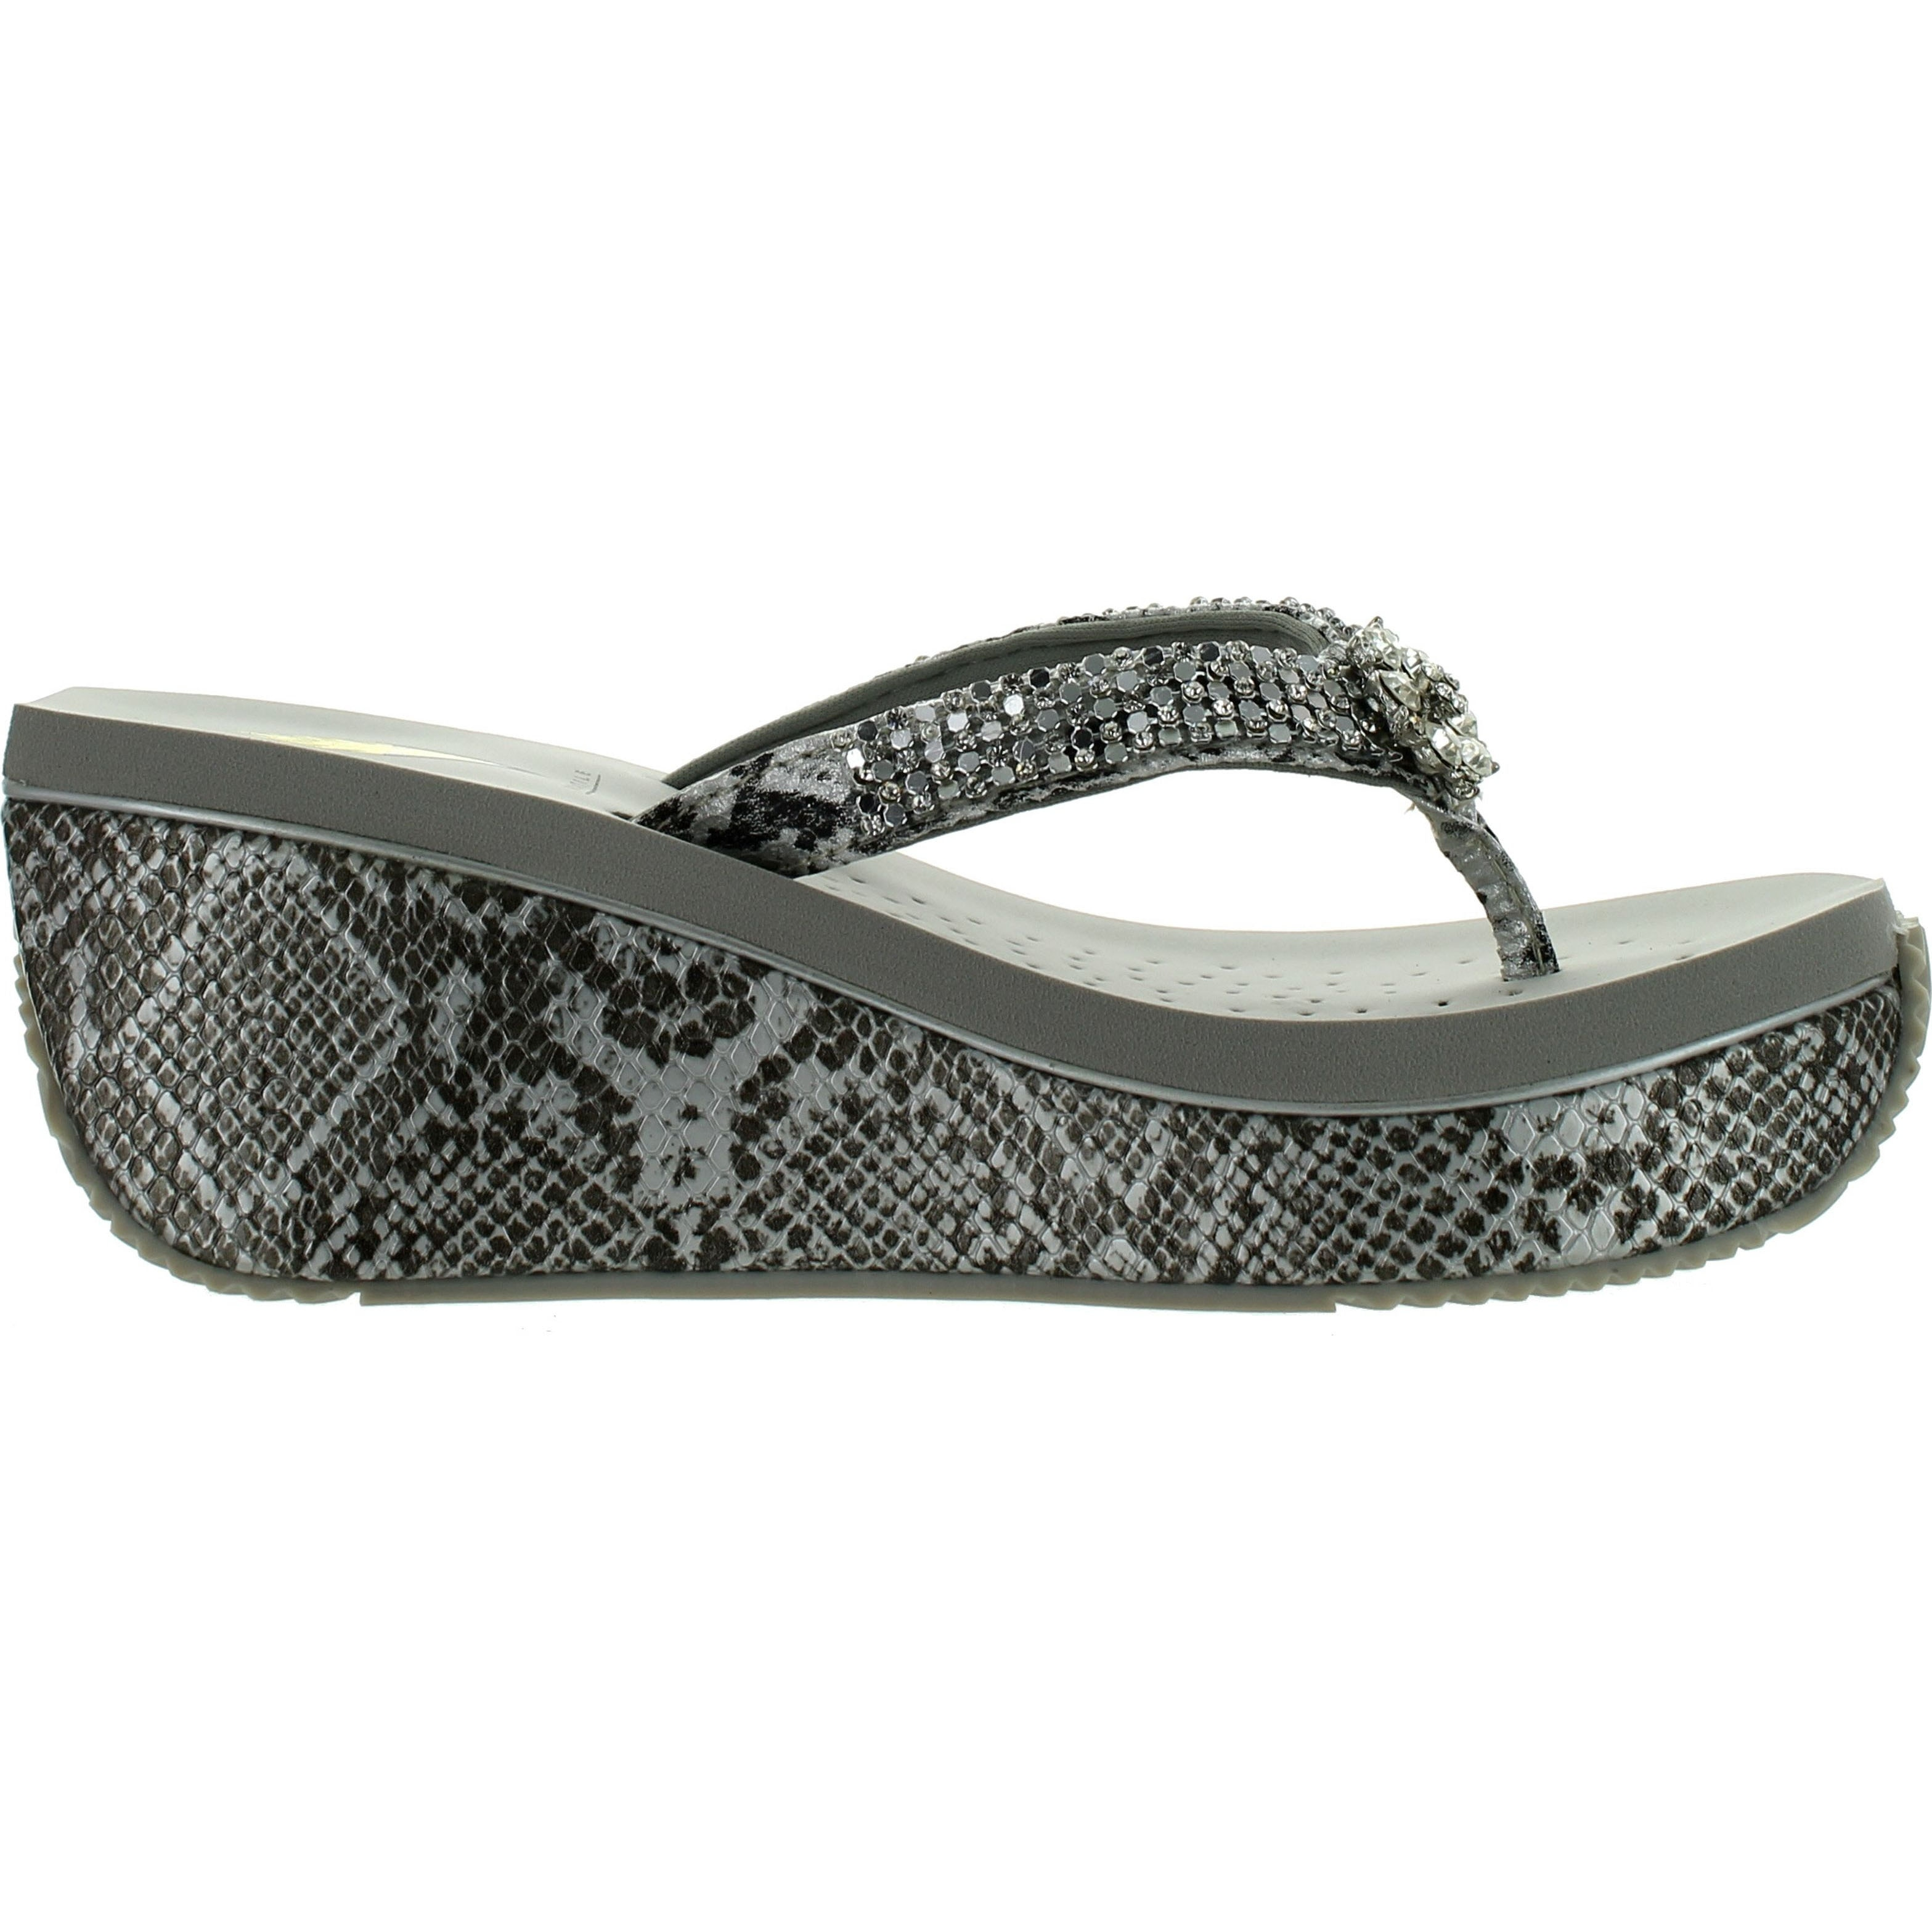 0adedefcd Shop Volatile Women s Lexie Thong Sandal - Free Shipping On Orders Over  45  - Overstock - 14383414